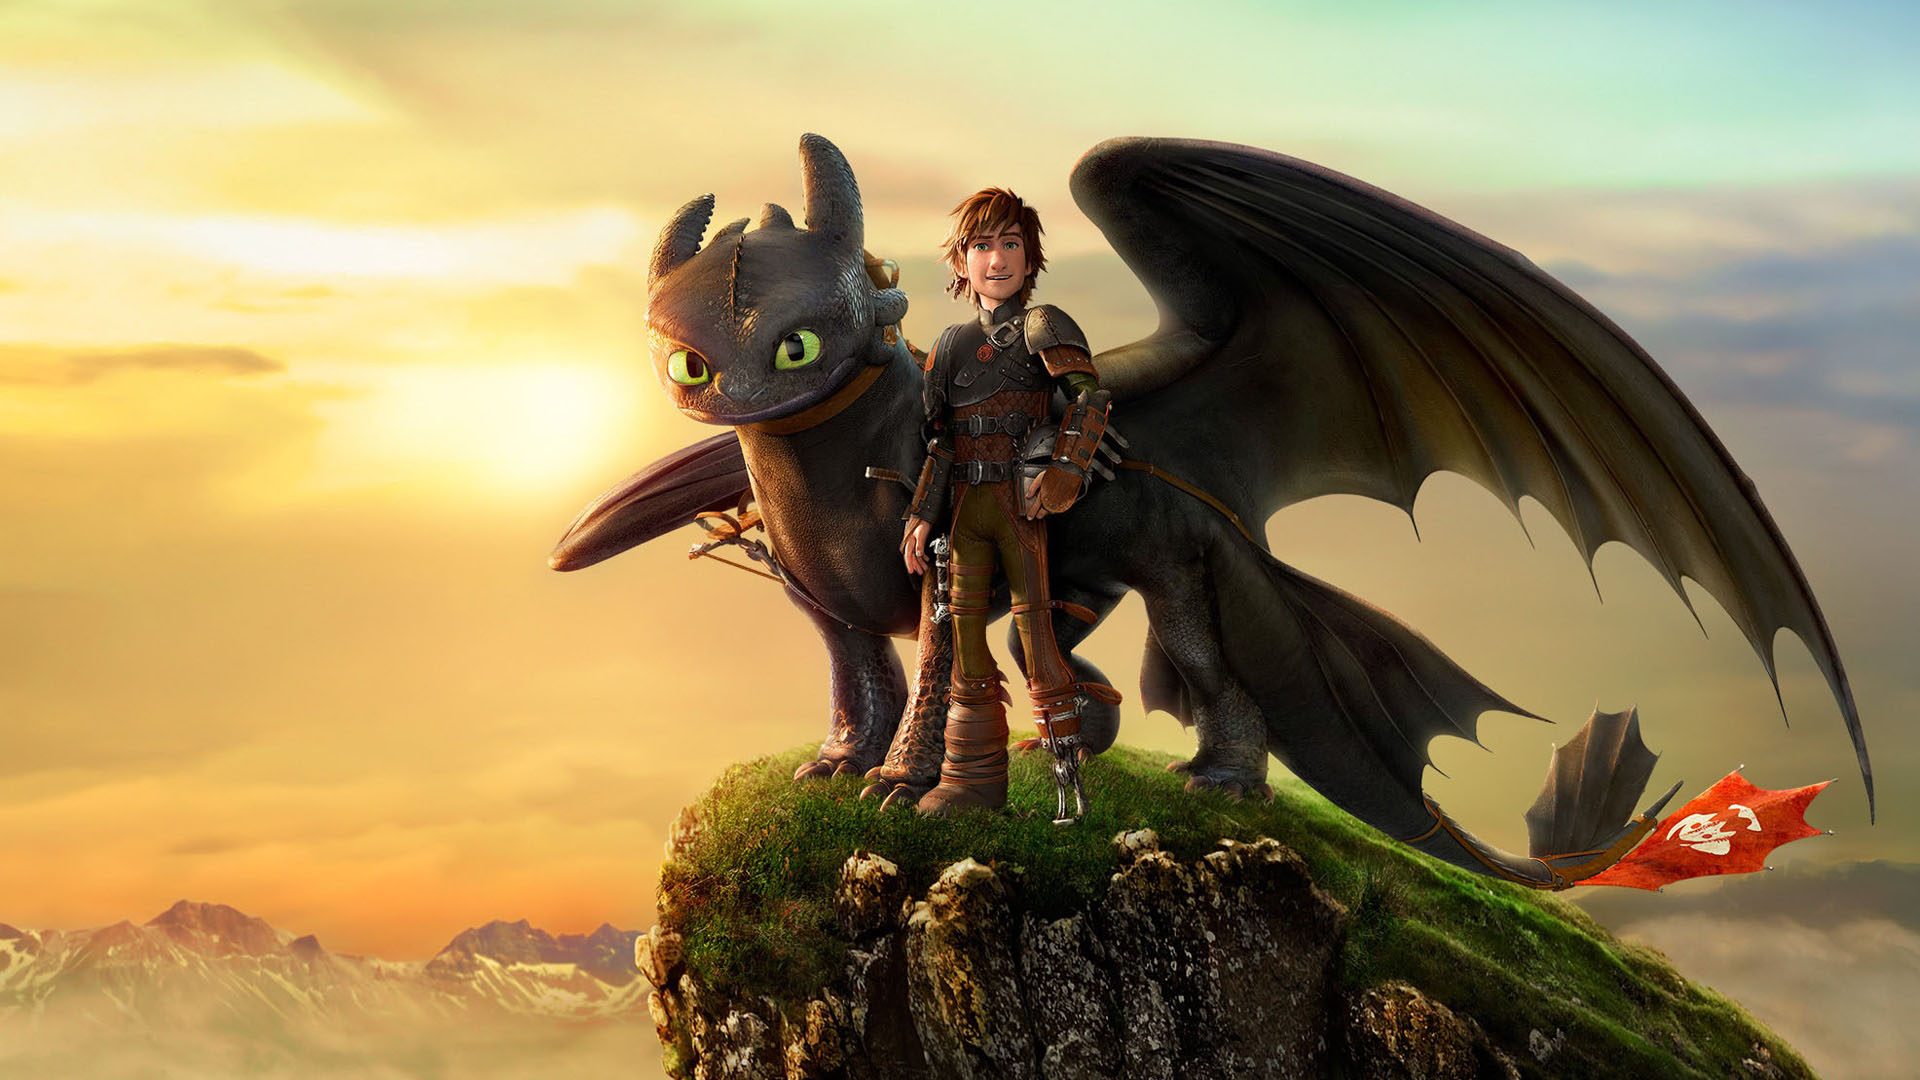 how to train your dragon 2 wallpaper new